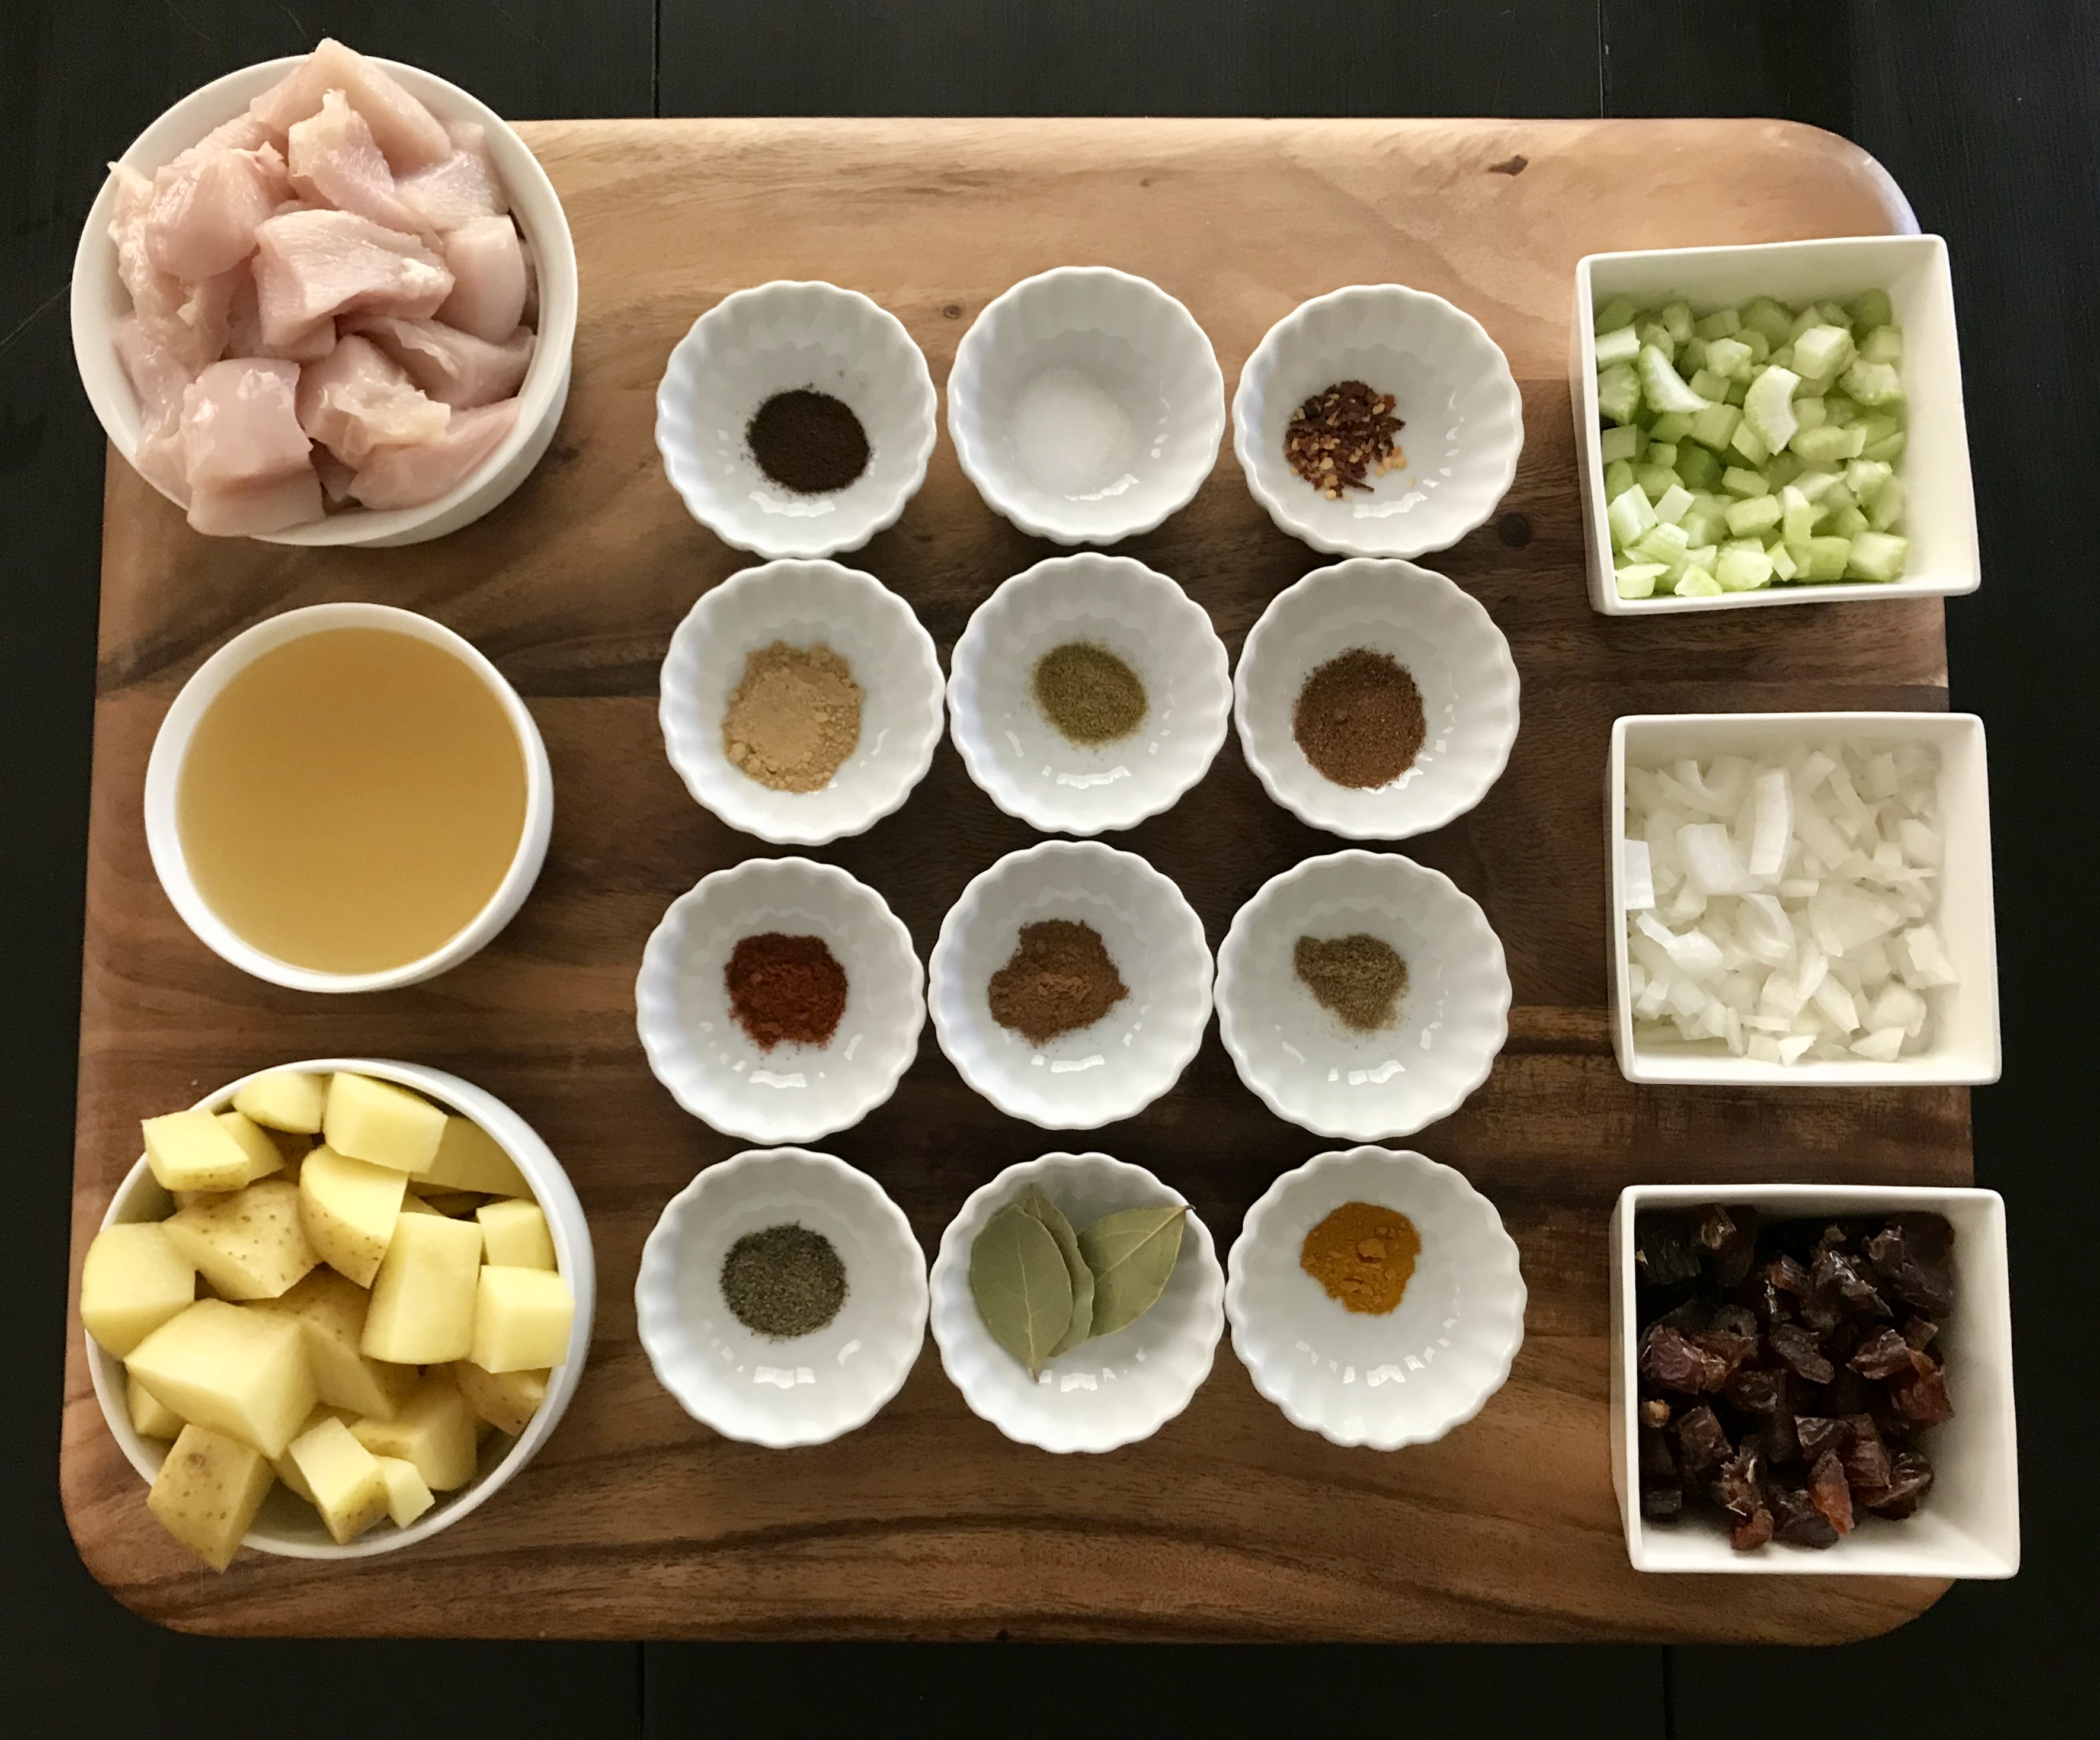 Ingredients for Slow Cooked Moroccan Chicken Stew